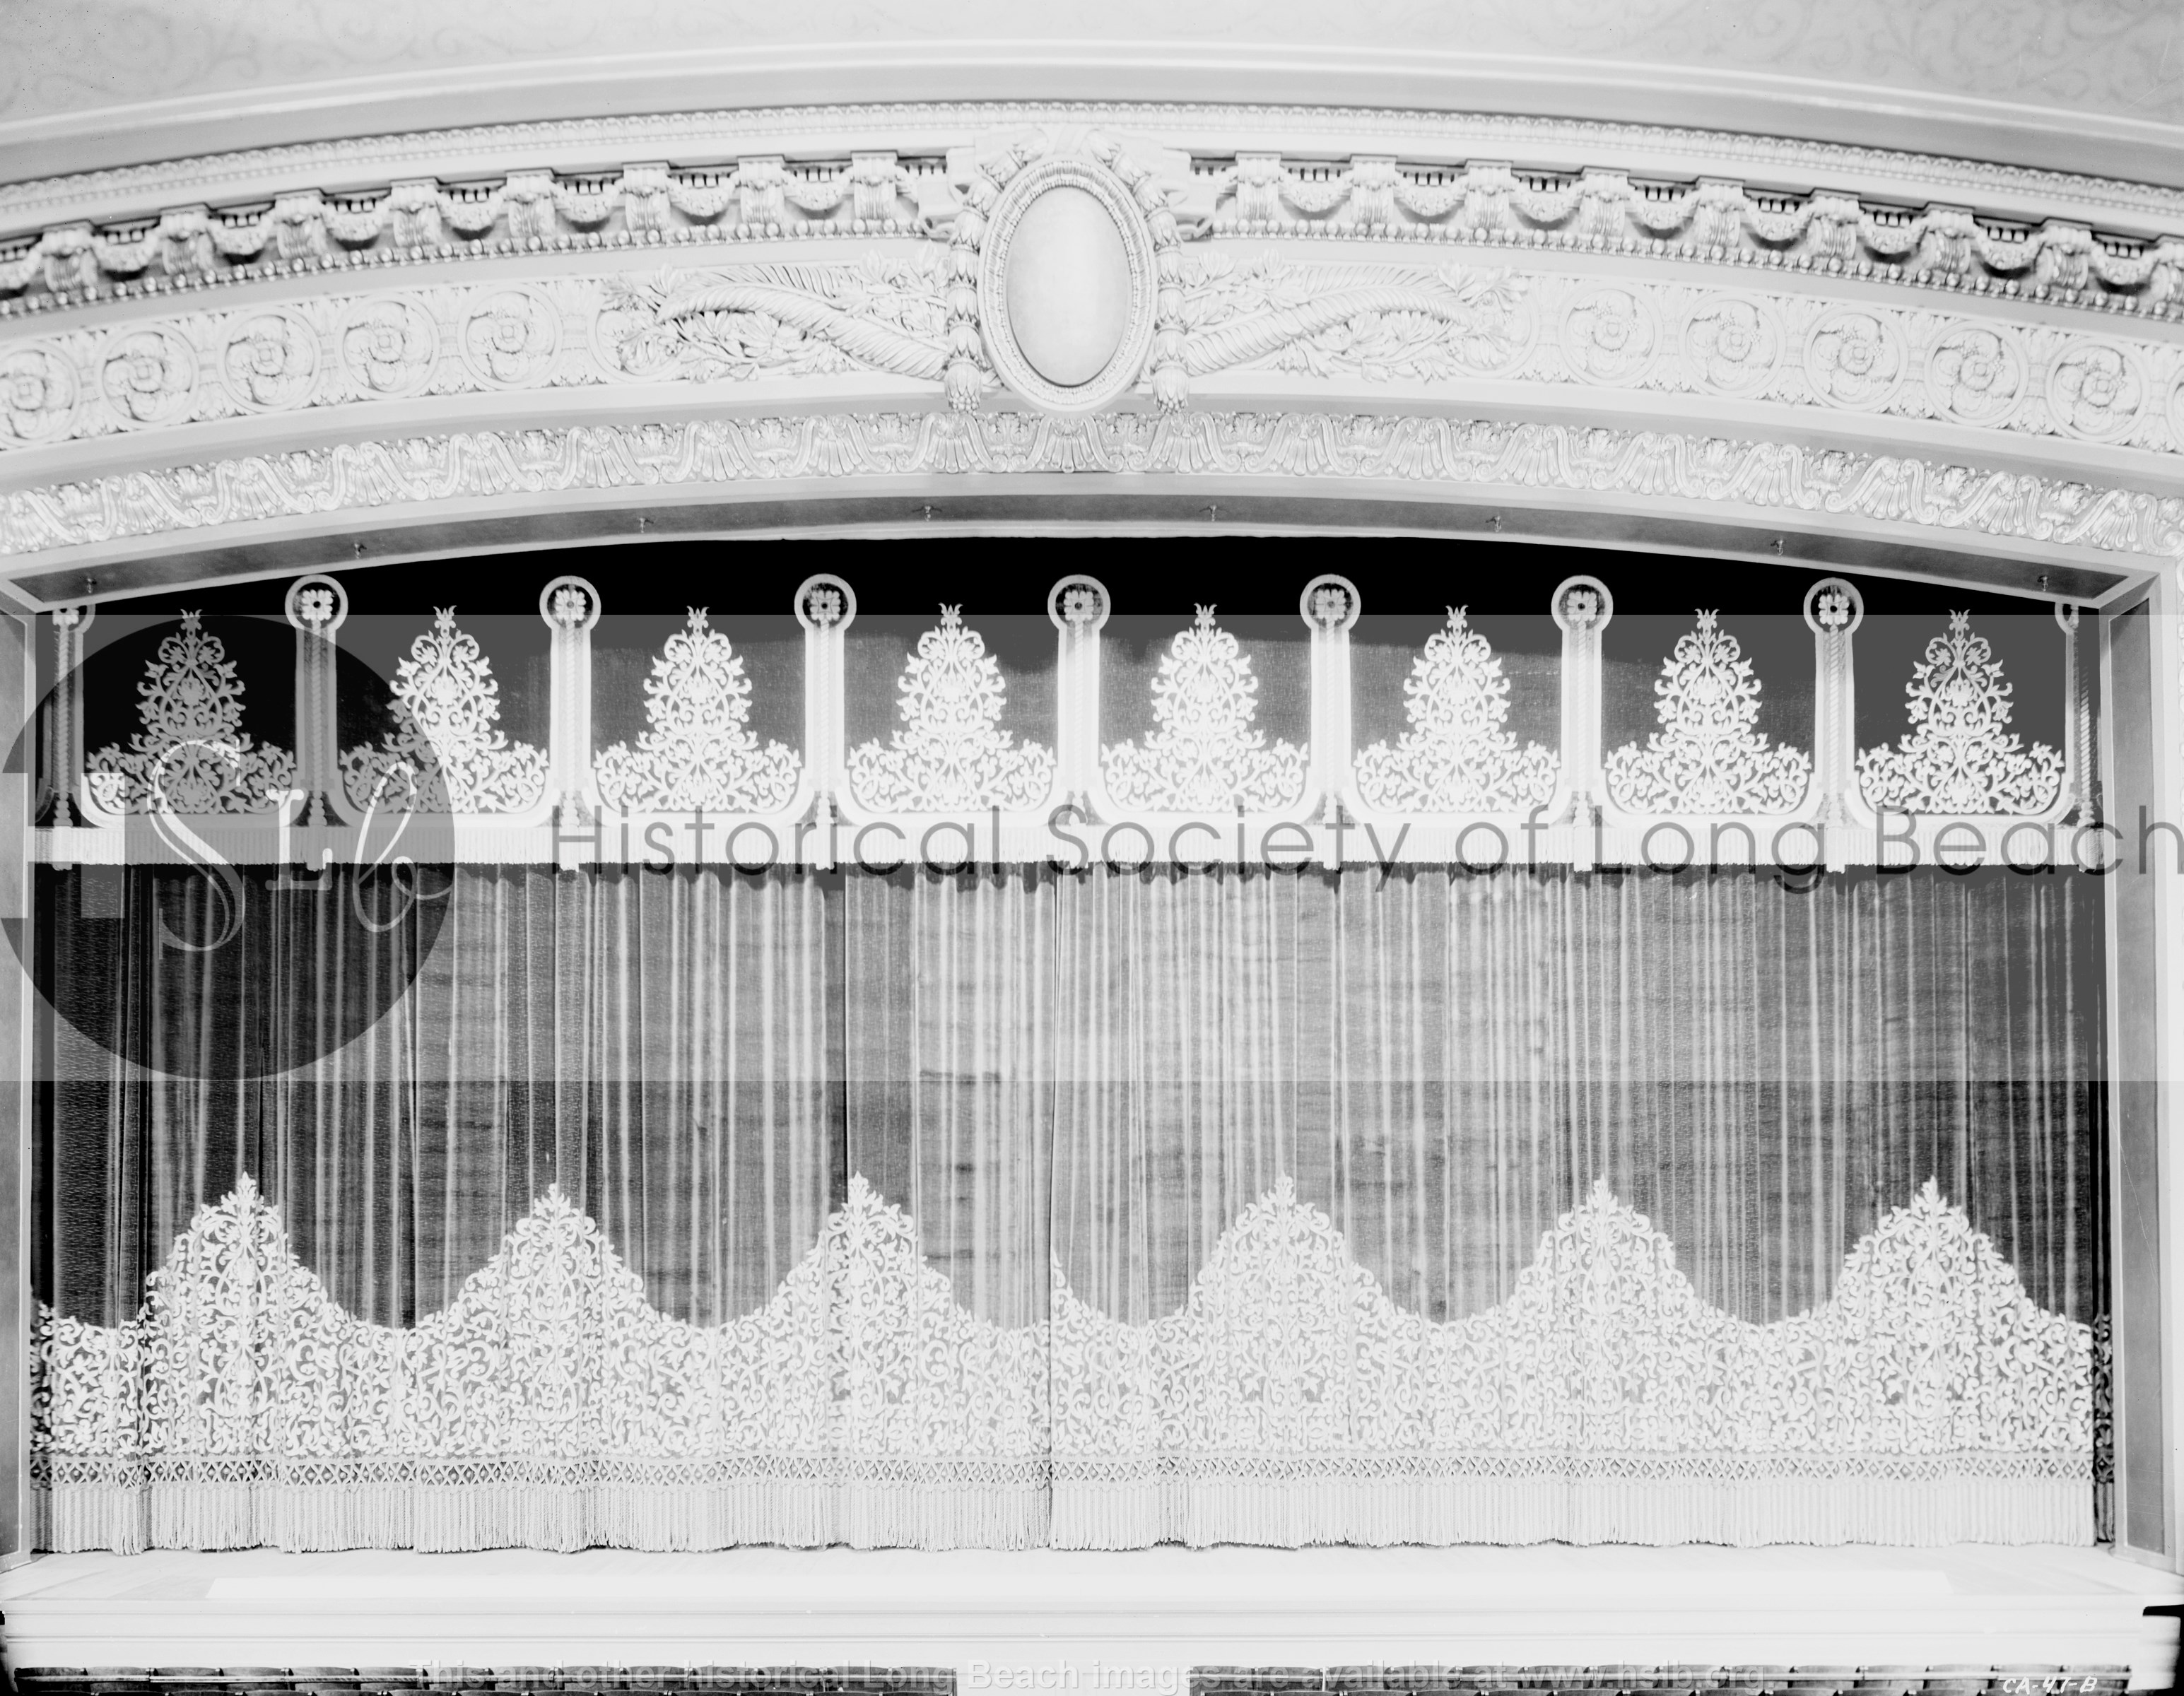 Municipal Auditorium curtains, 1932 vintage photograph